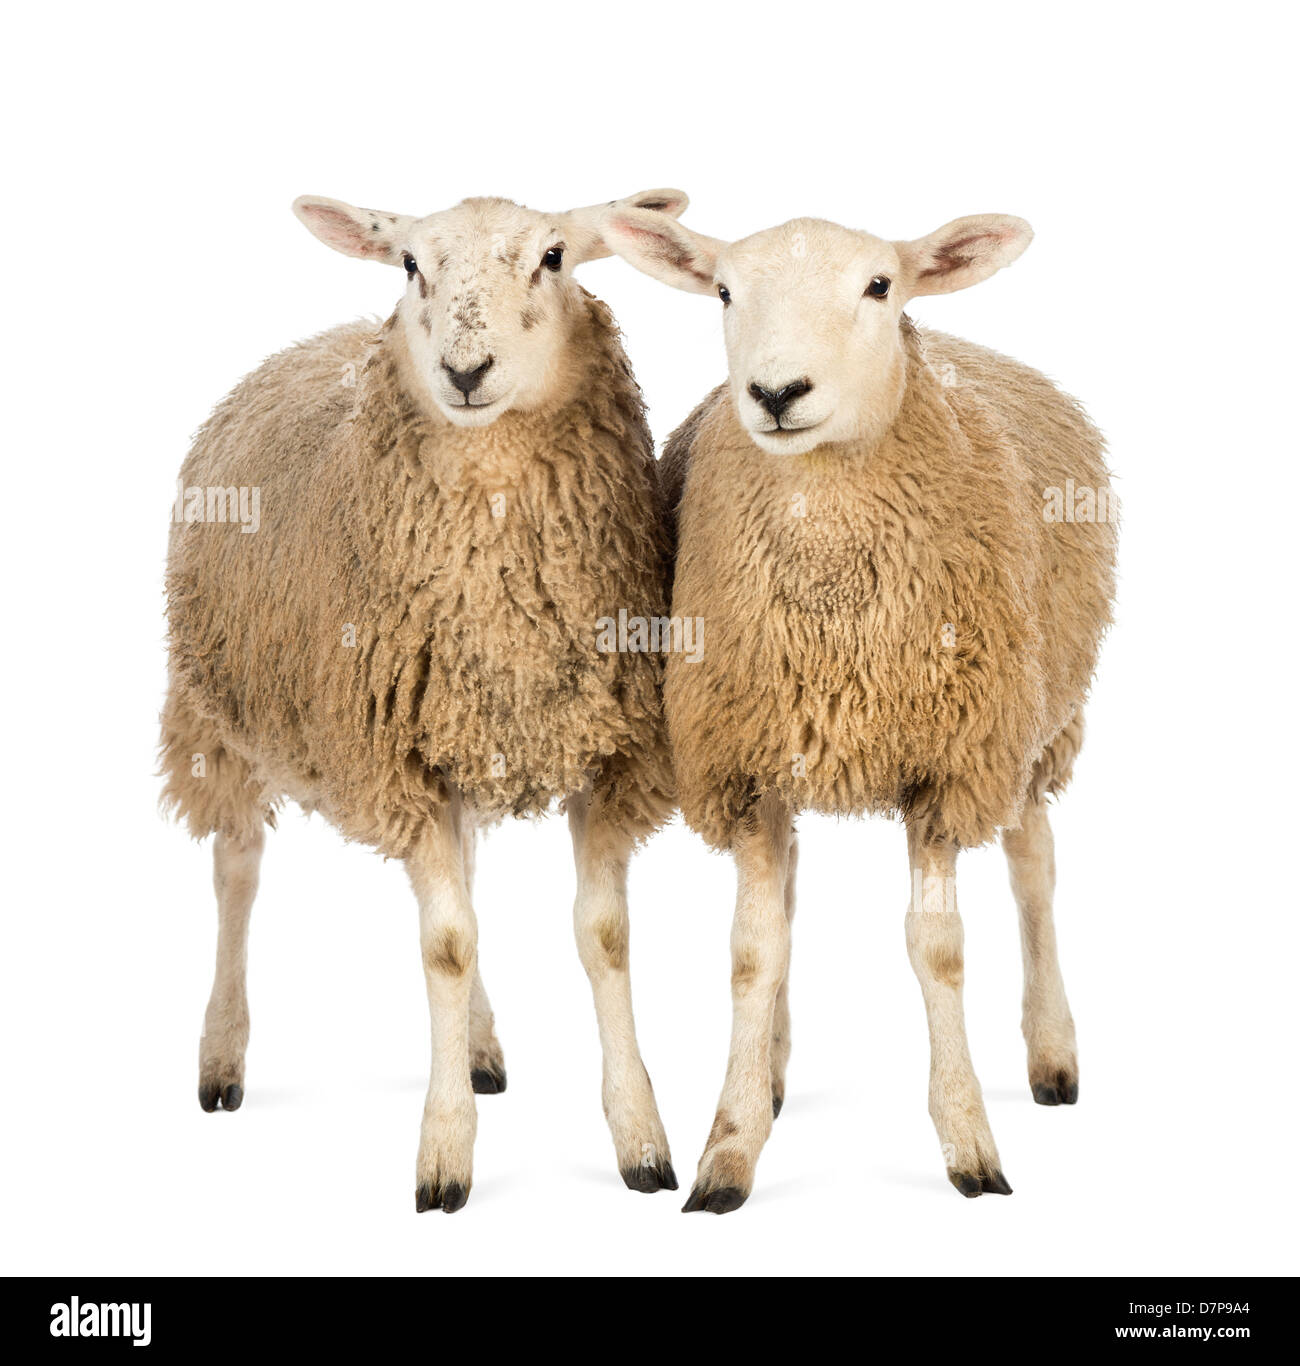 Deux Moutons standing in front of white background Photo Stock